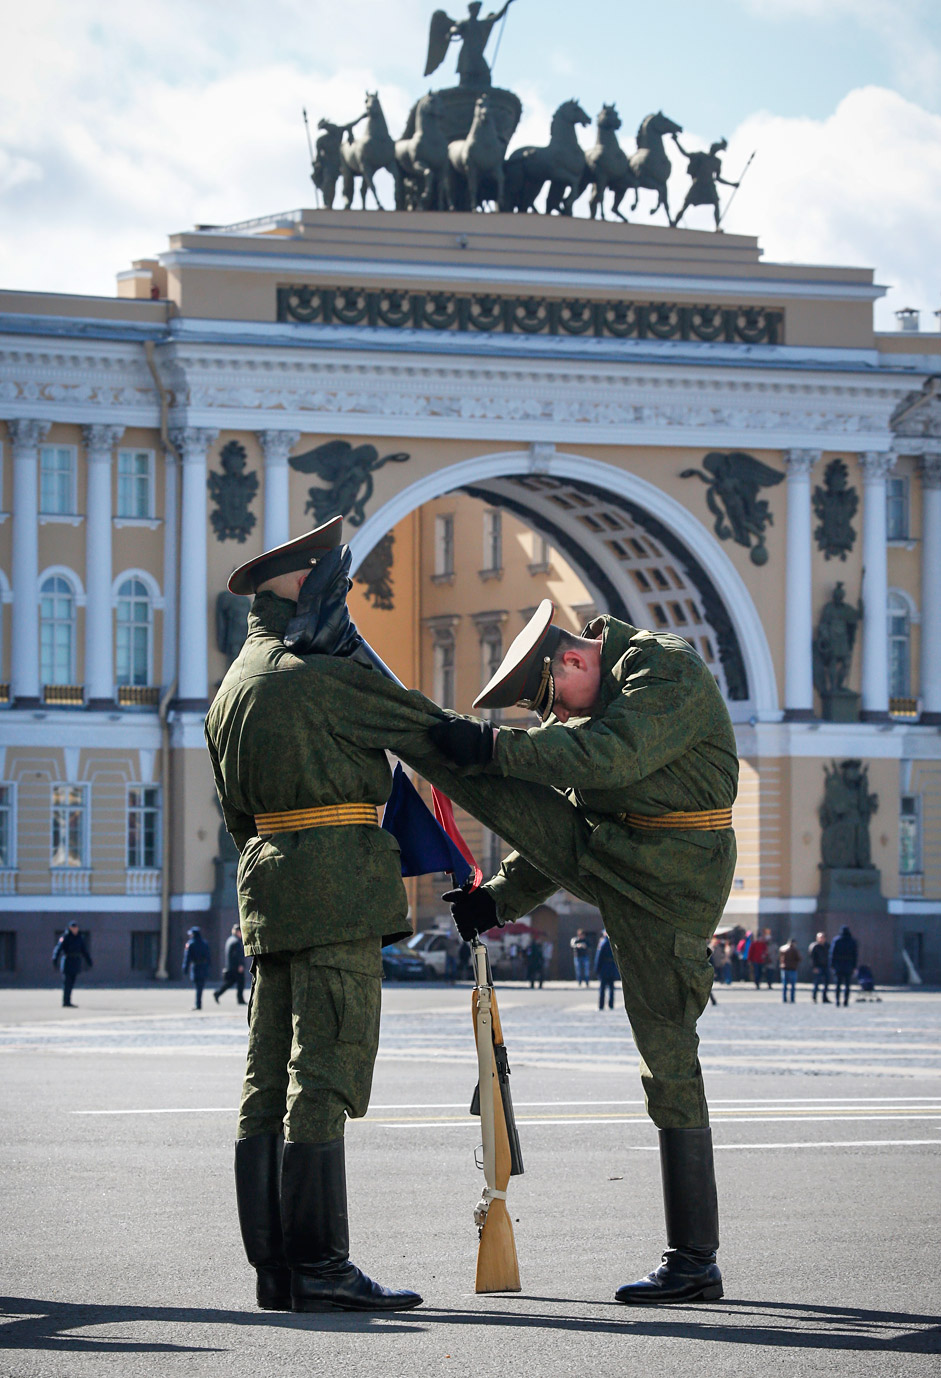 Soldiers warm up prior to a rehearsal for the Victory Day military parade